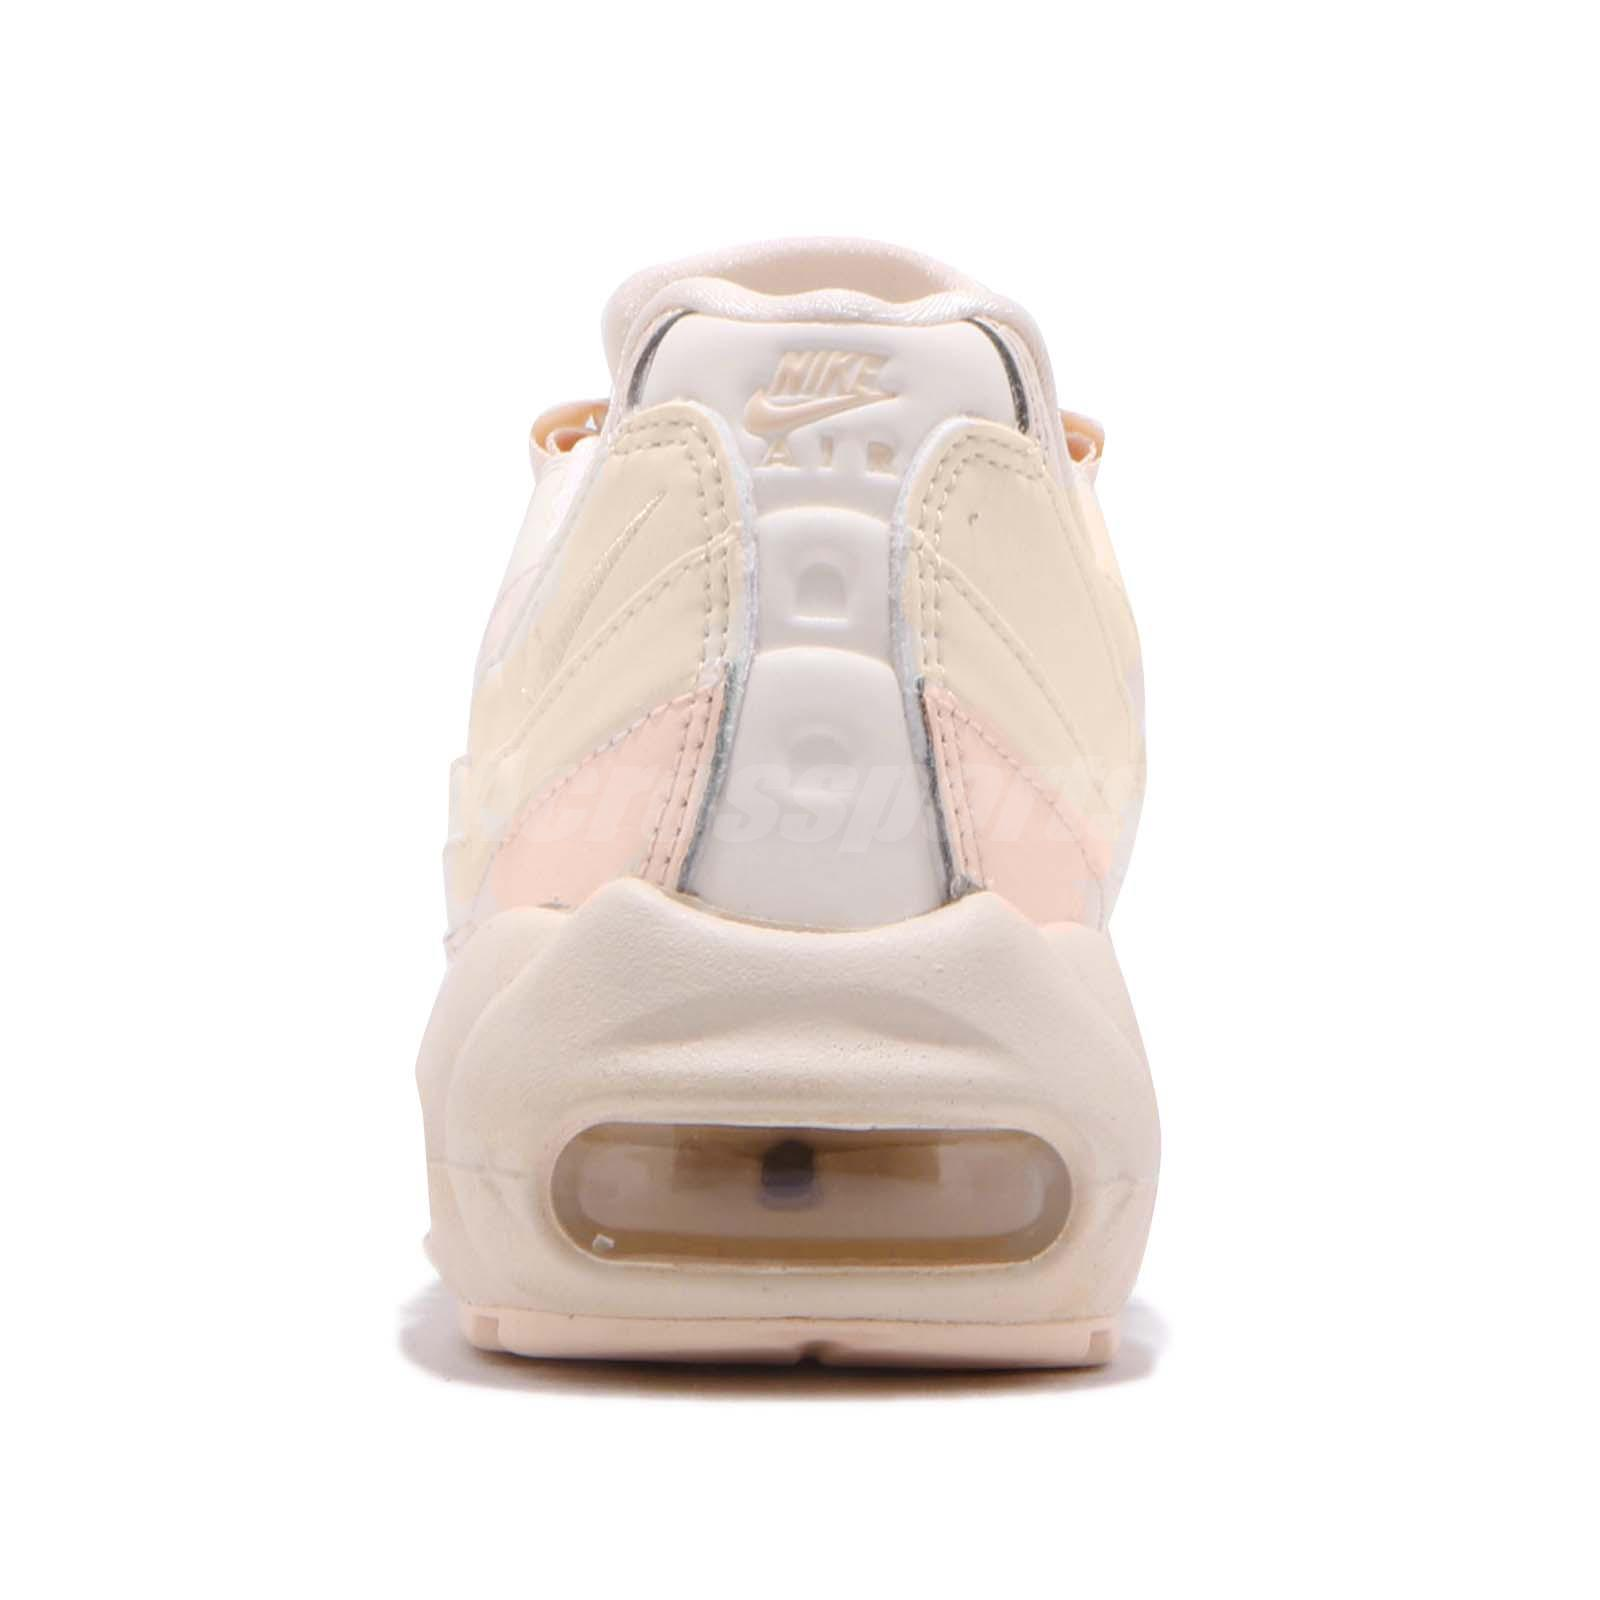 Nike Wmns Air Max 95 LX Lux Reflective Guava Ice Pink Womens